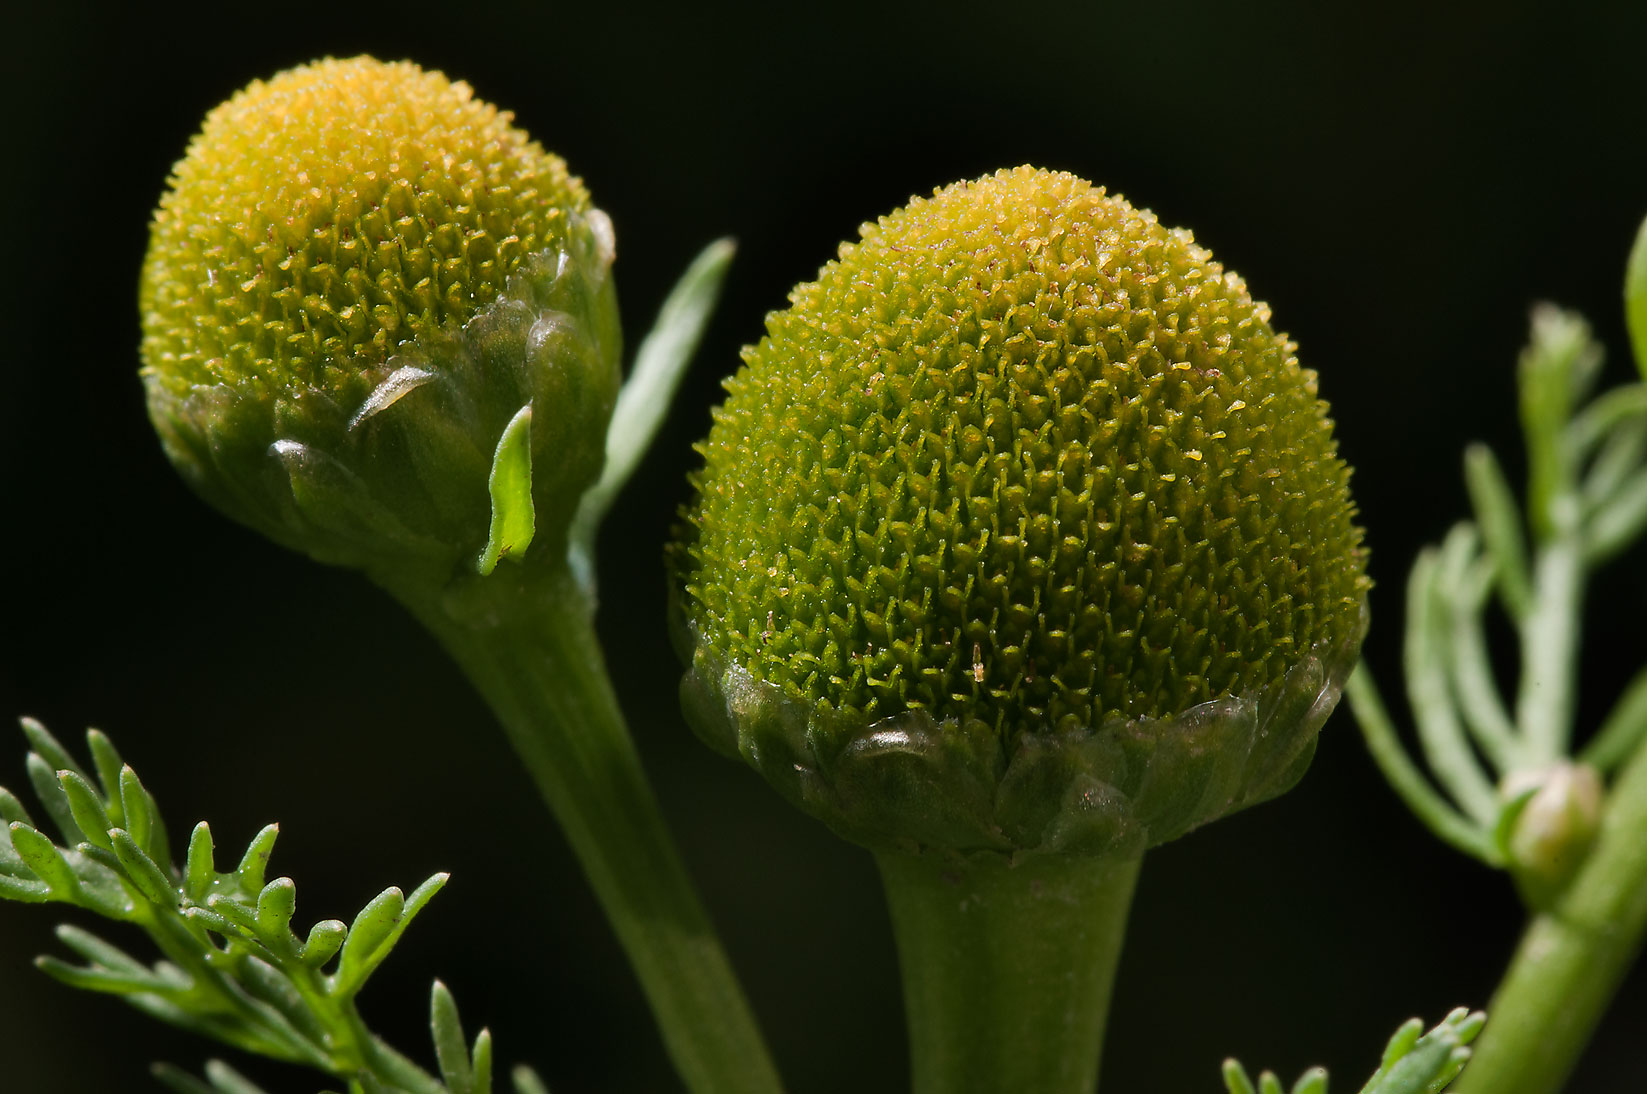 Cone-shaped flowers of pineapple weed (Matricaria...mile north from St.Petersburg. Russia